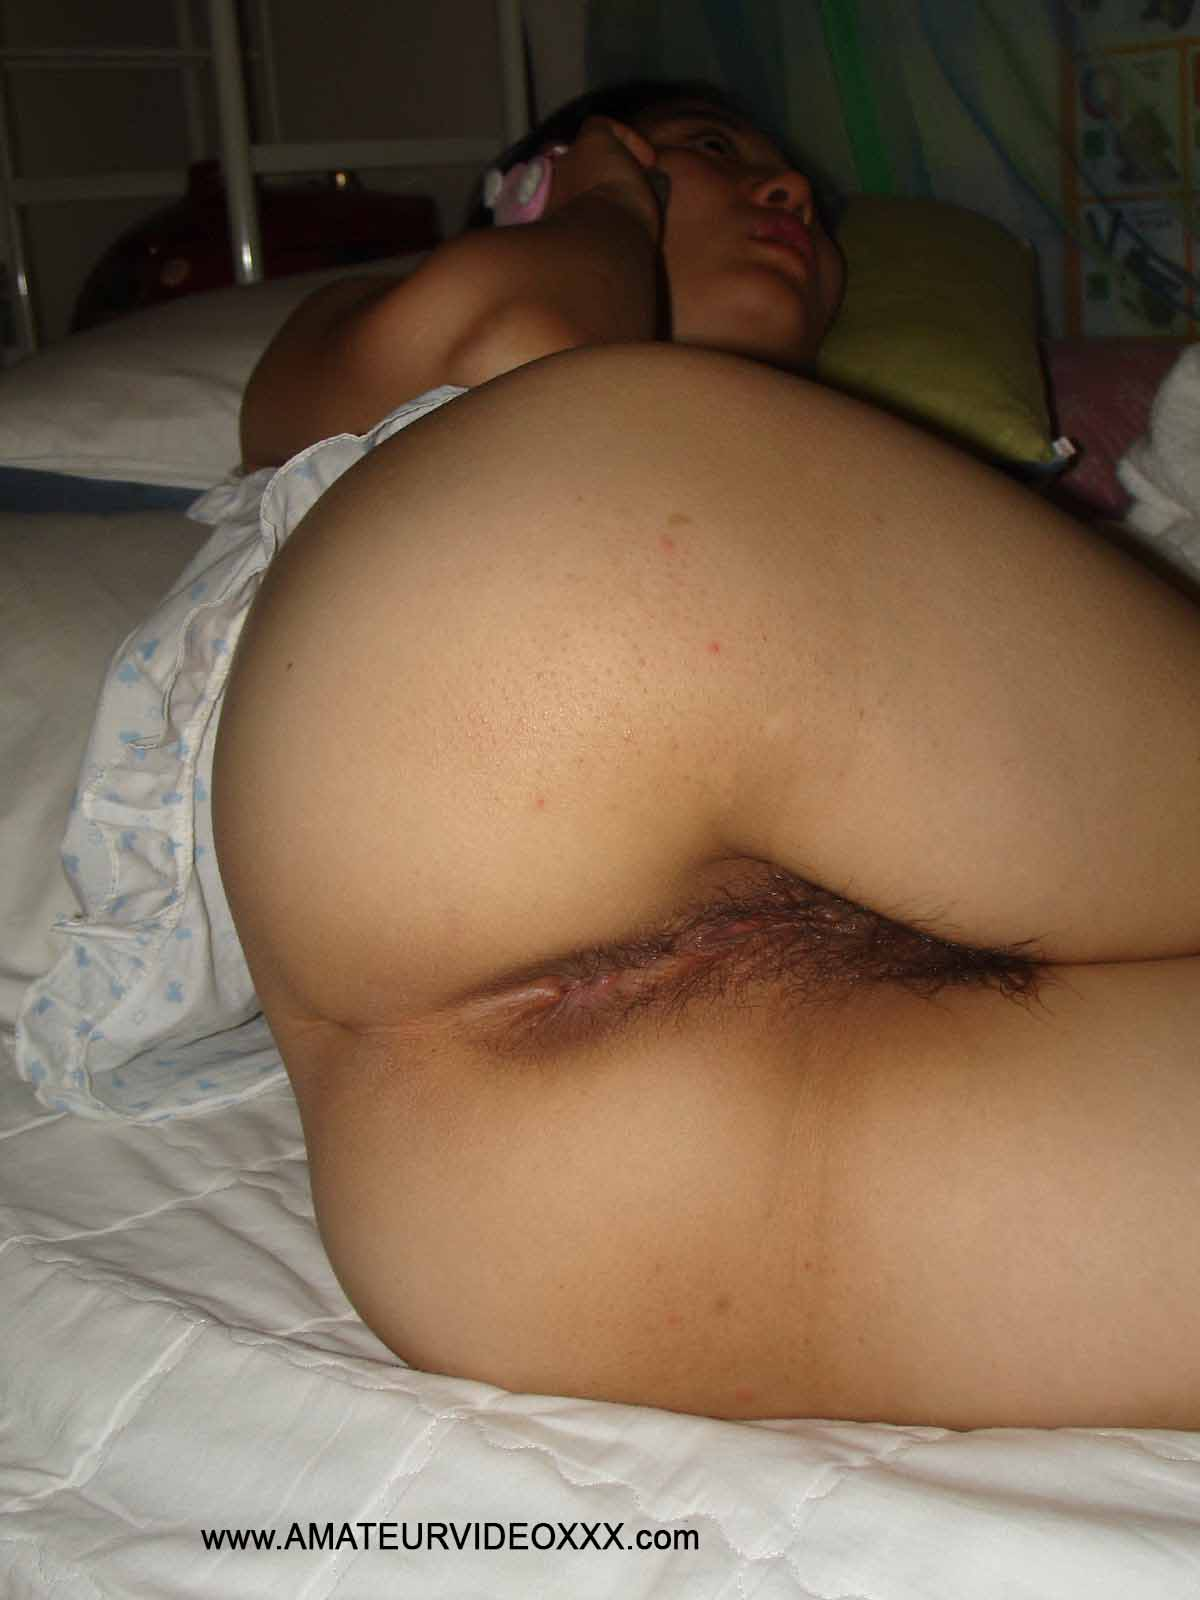 Naked self pics hairy young